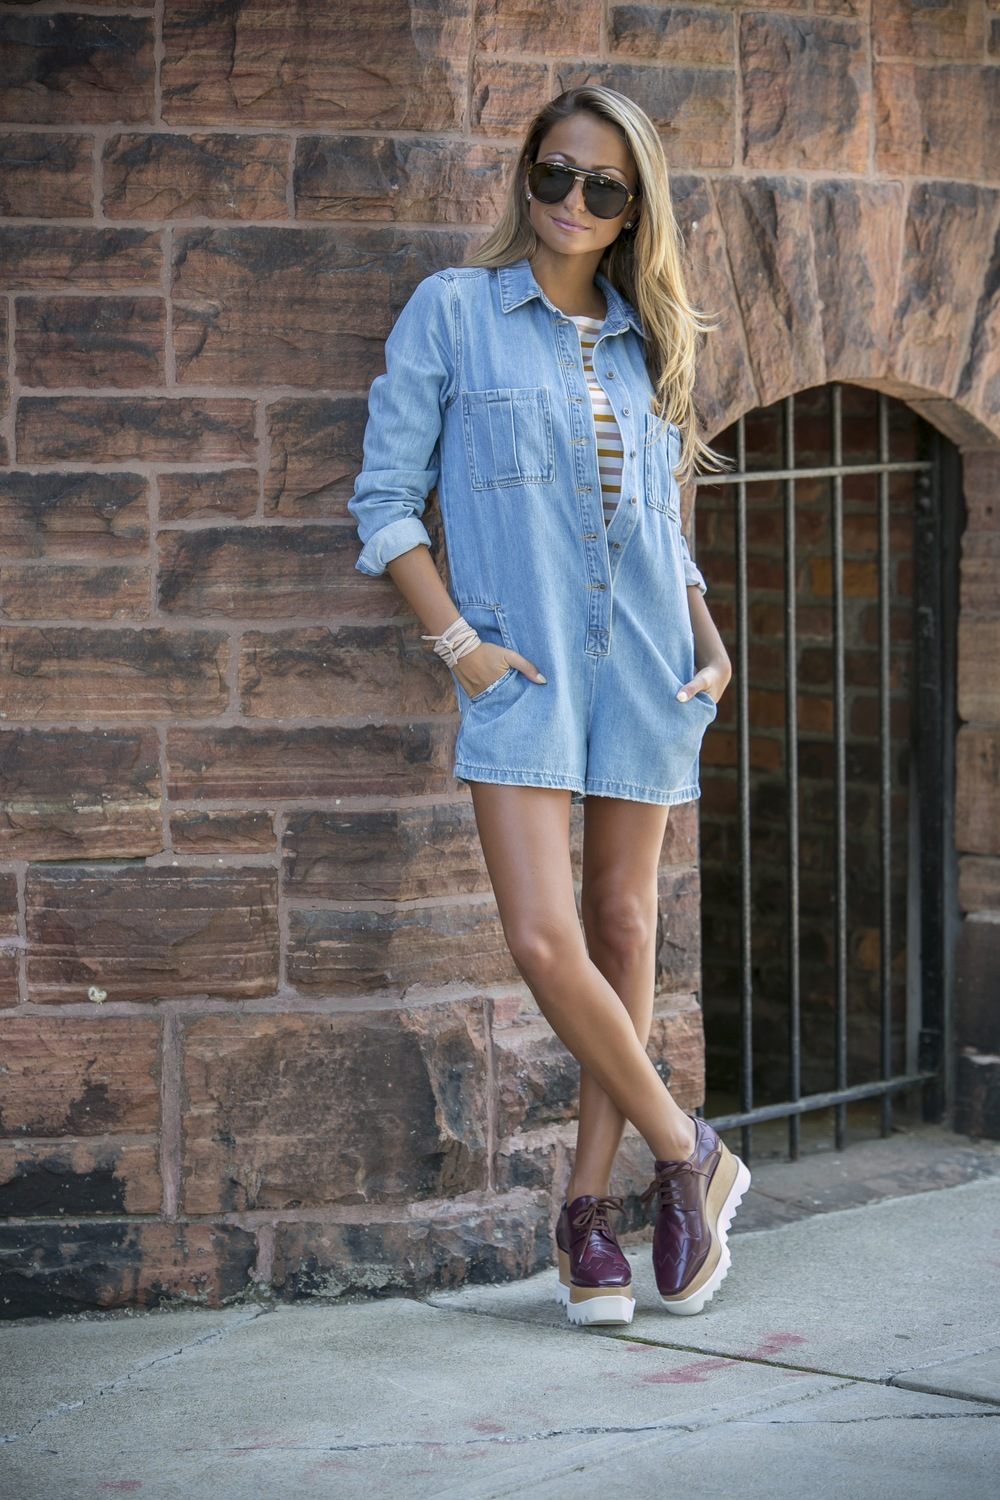 forever21 denim romper, jcrew striped tee, stella mccartney platforms worn on fashion blogger Lauren Recchia